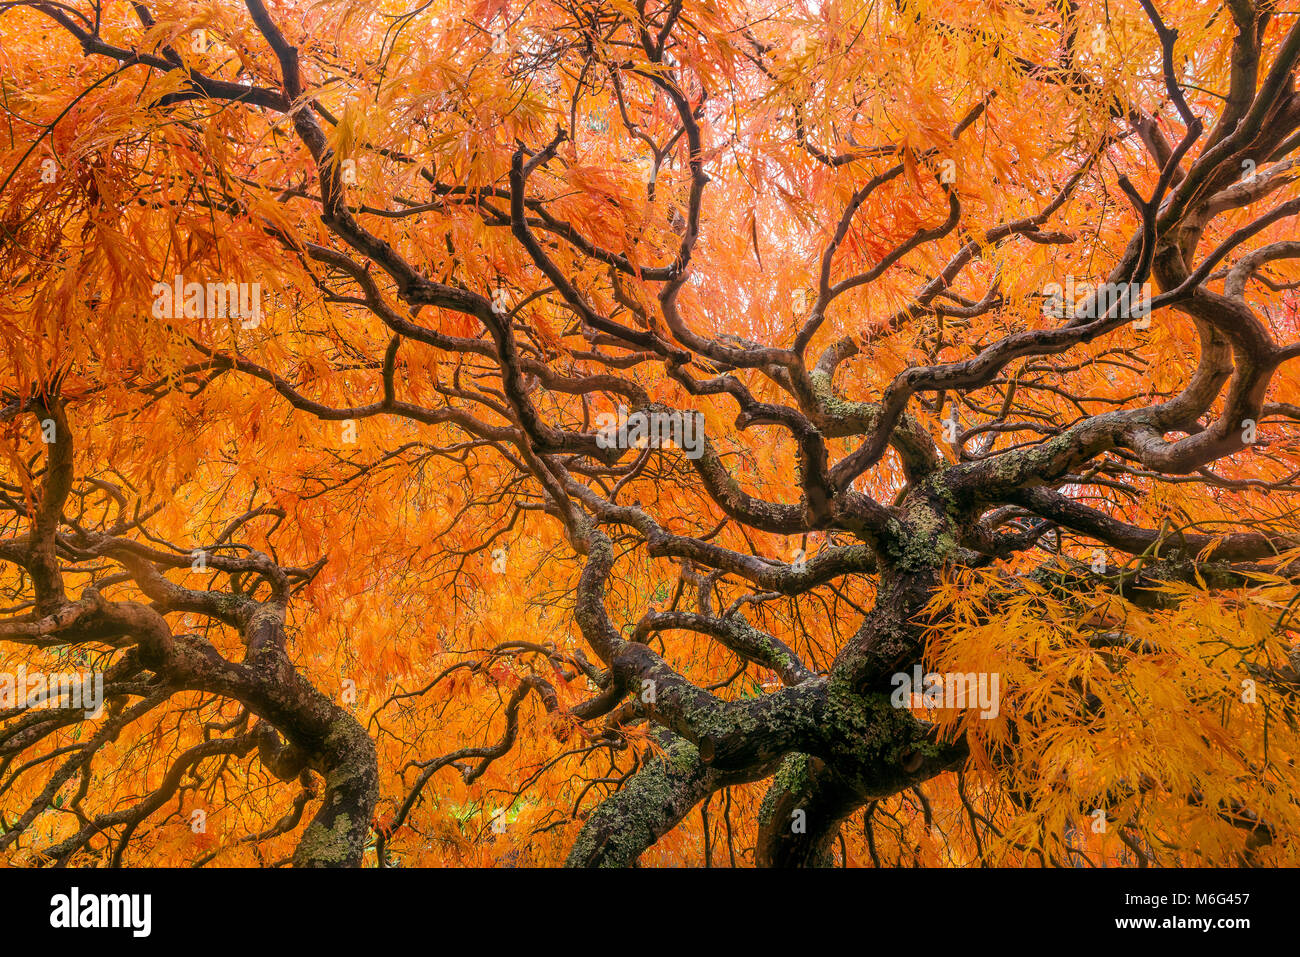 Japanese Maple, Laceleaf, Acer Palmatum, Fern Canyon Garden, Mill Valley, California - Stock Image